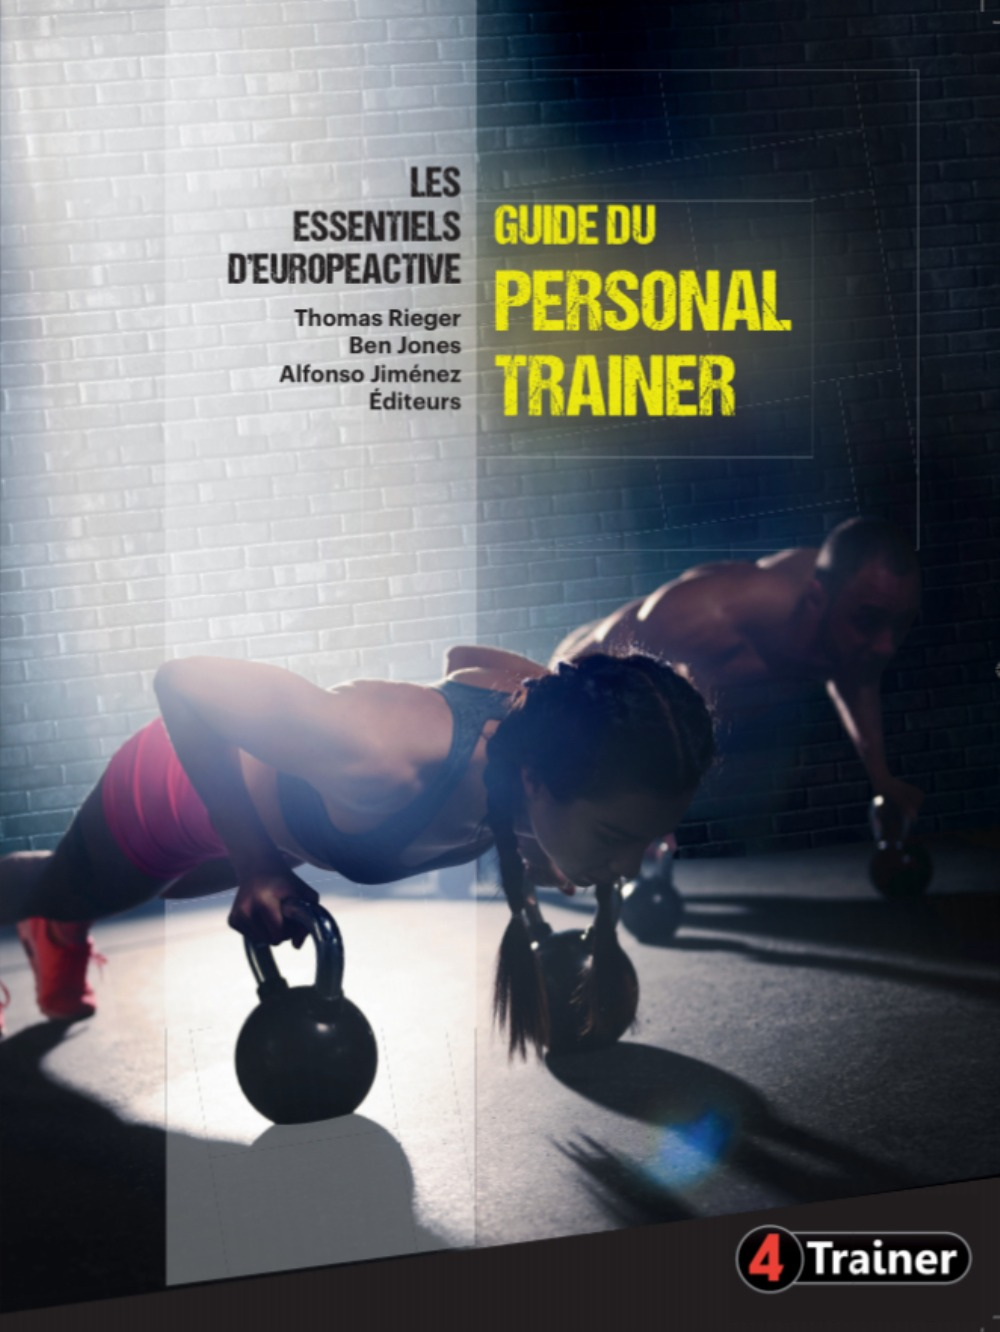 GUIDE DU PERSONAL TRAINER